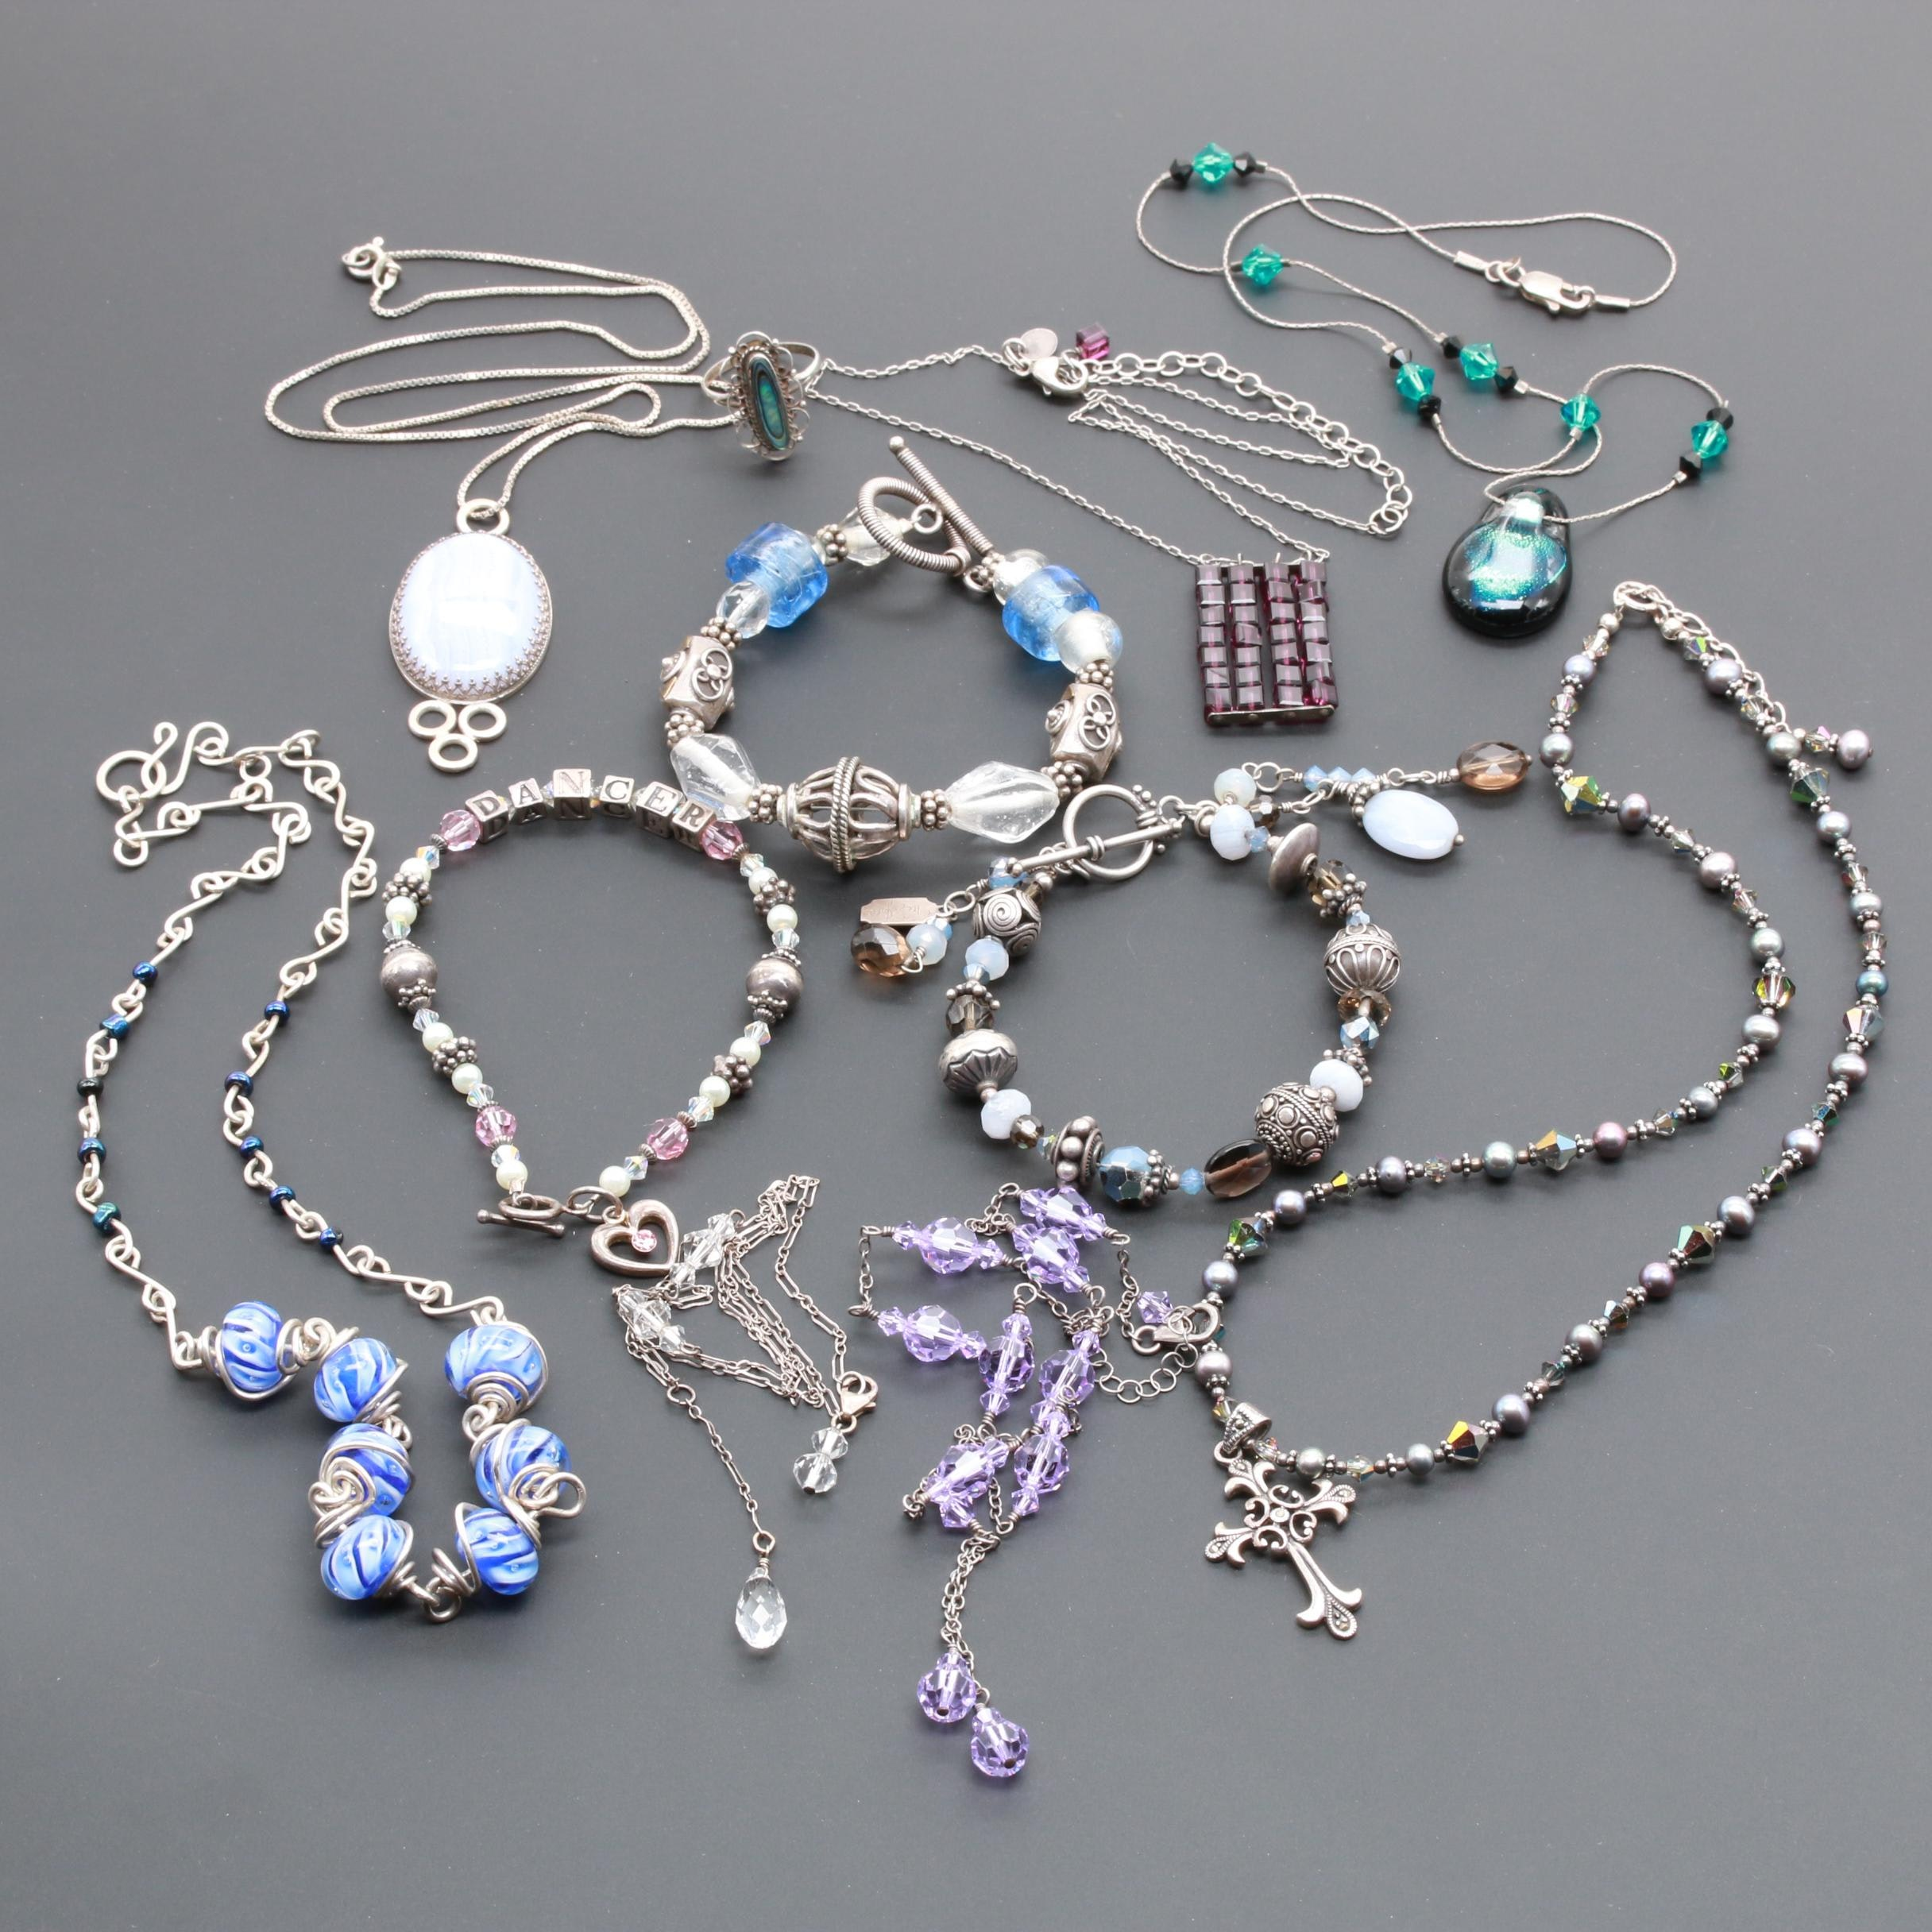 Sterling Silver Jewelry Assortment Including Abalone and Blue Lace Agate